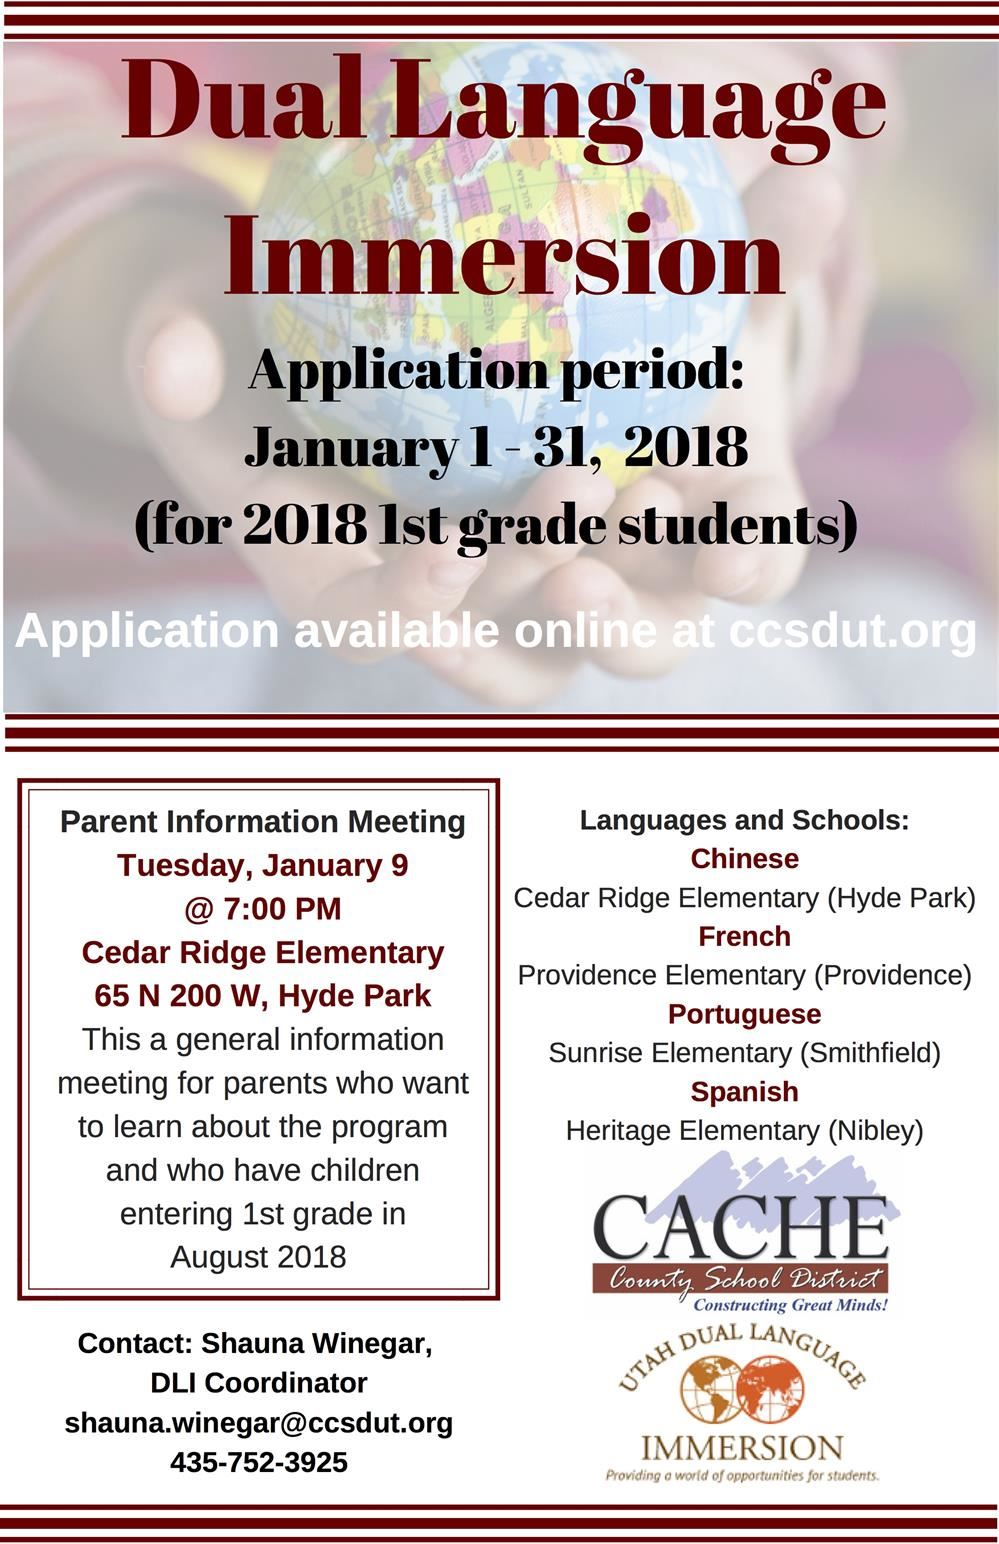 Applications for the Dual Immersion Language Program open January 1-31